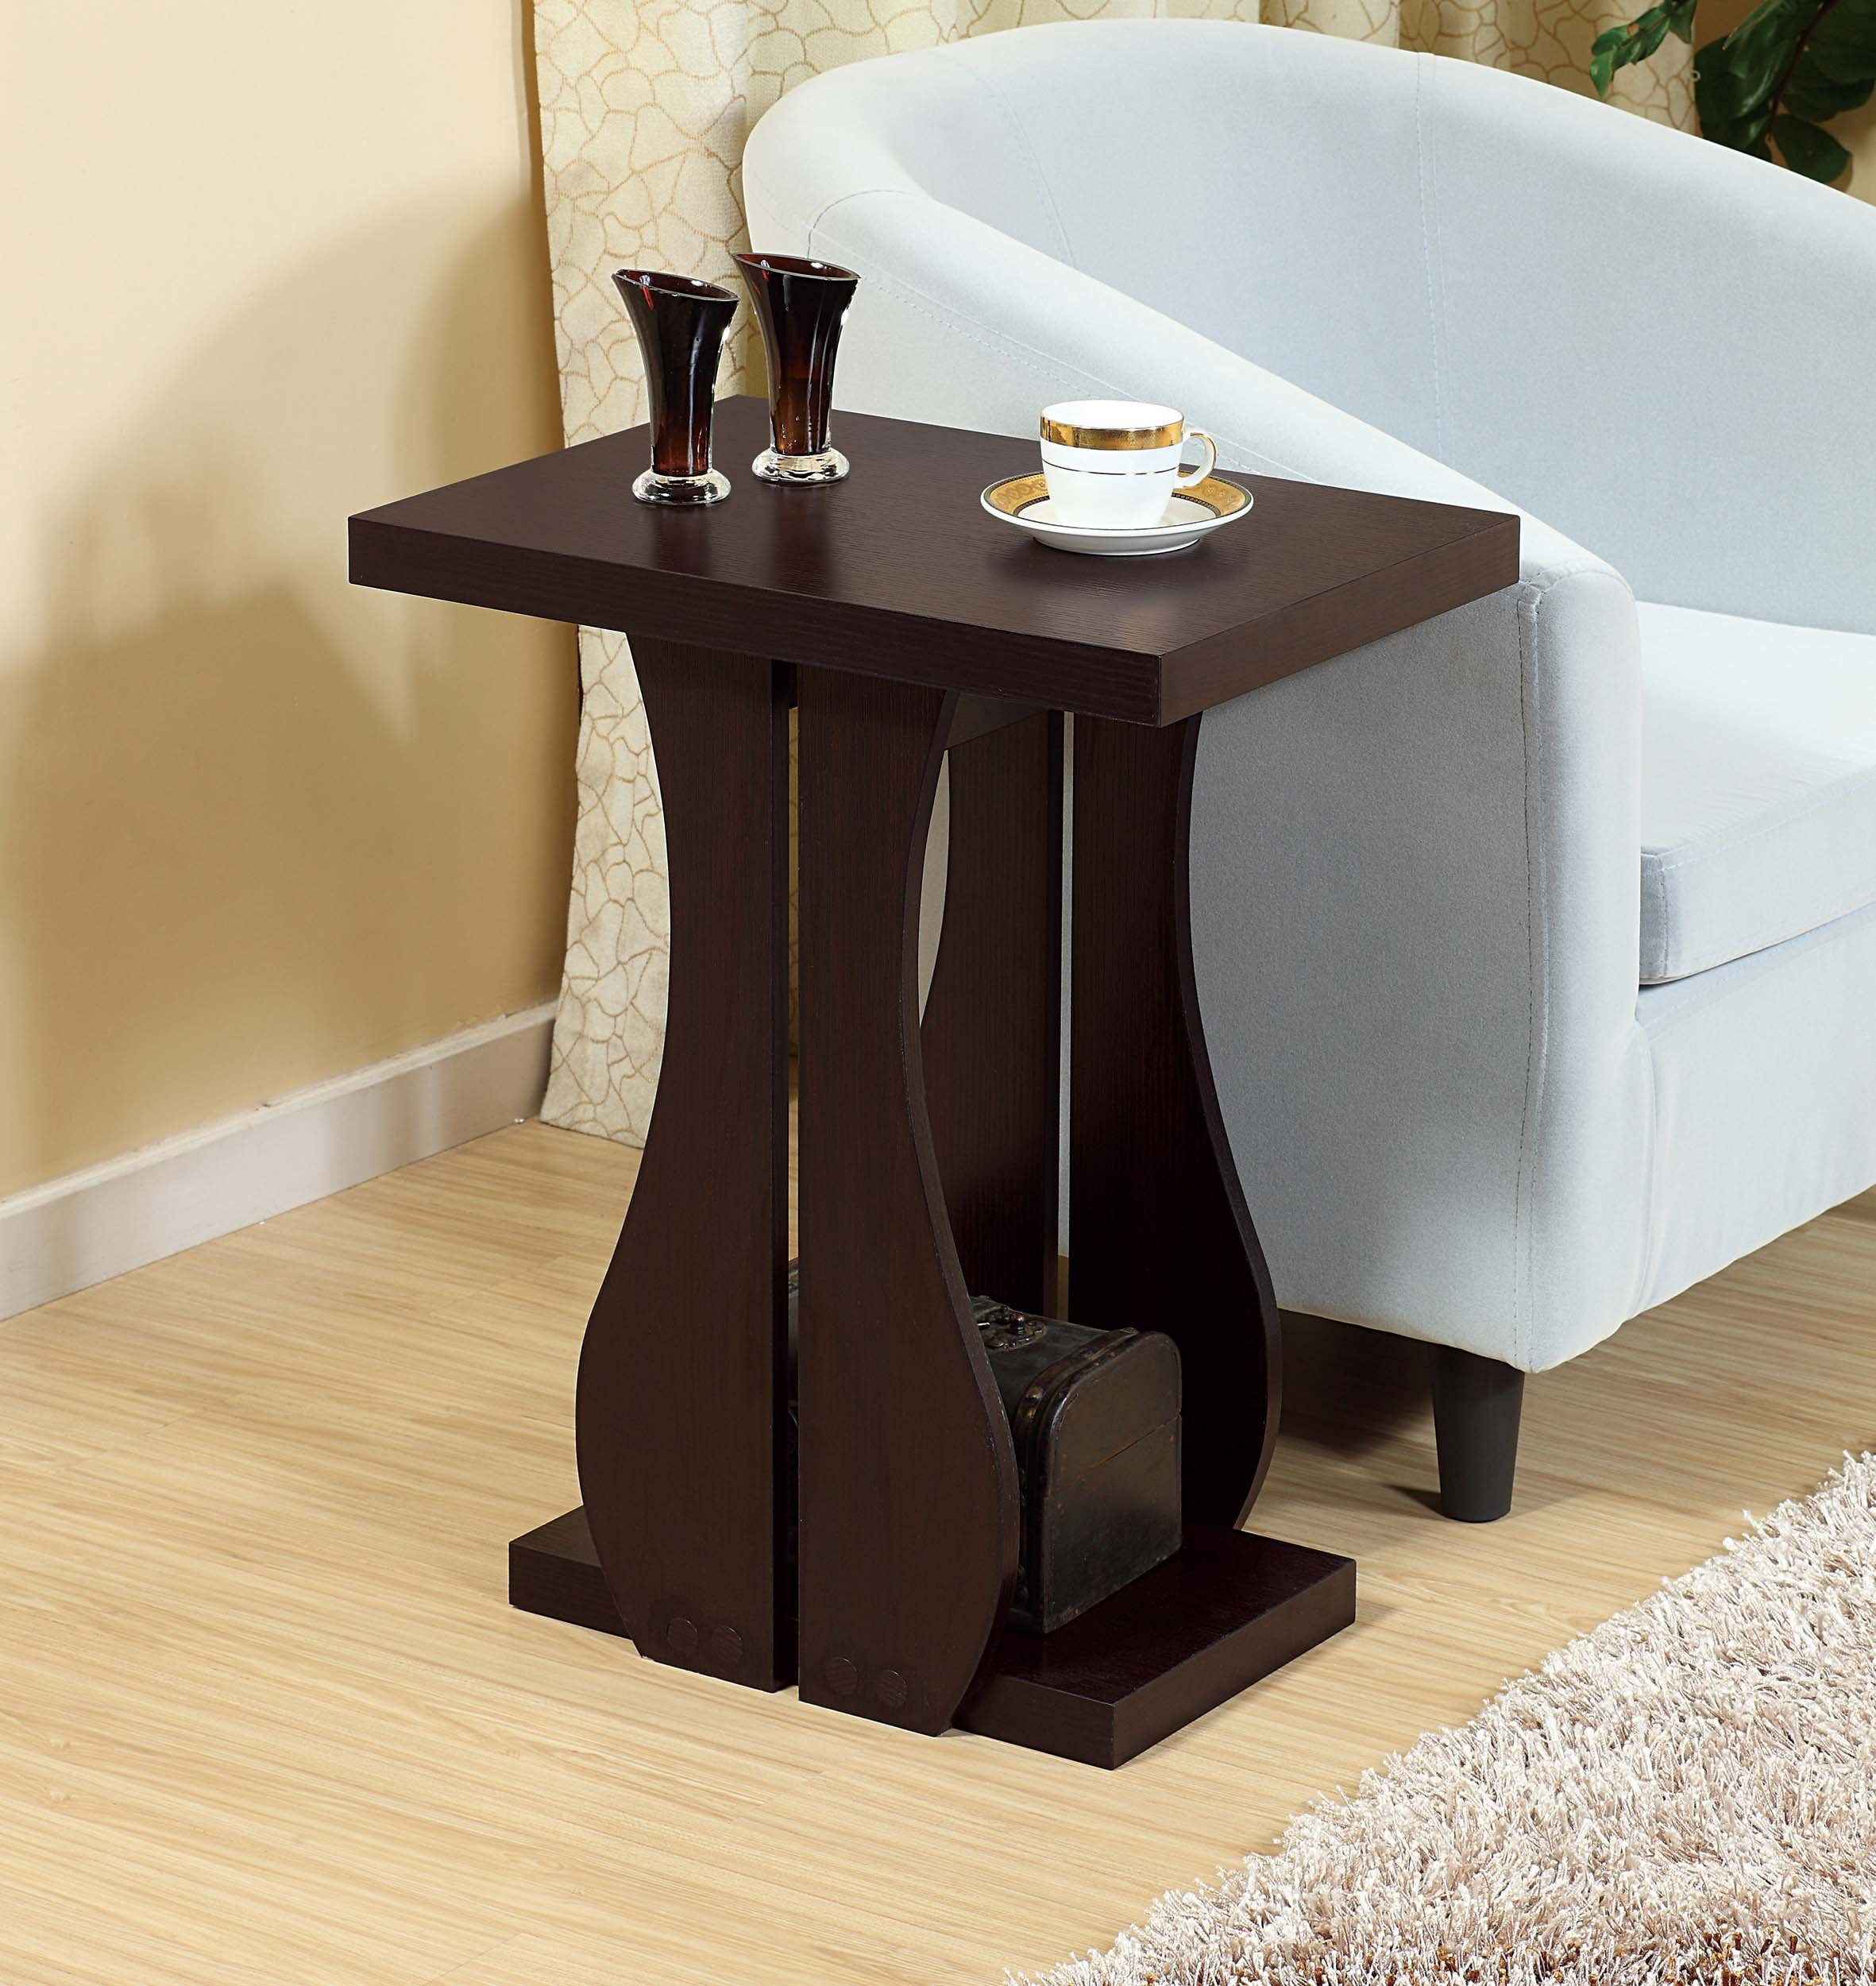 Q-Max Coffee Table, RED COCOA by Q.Max